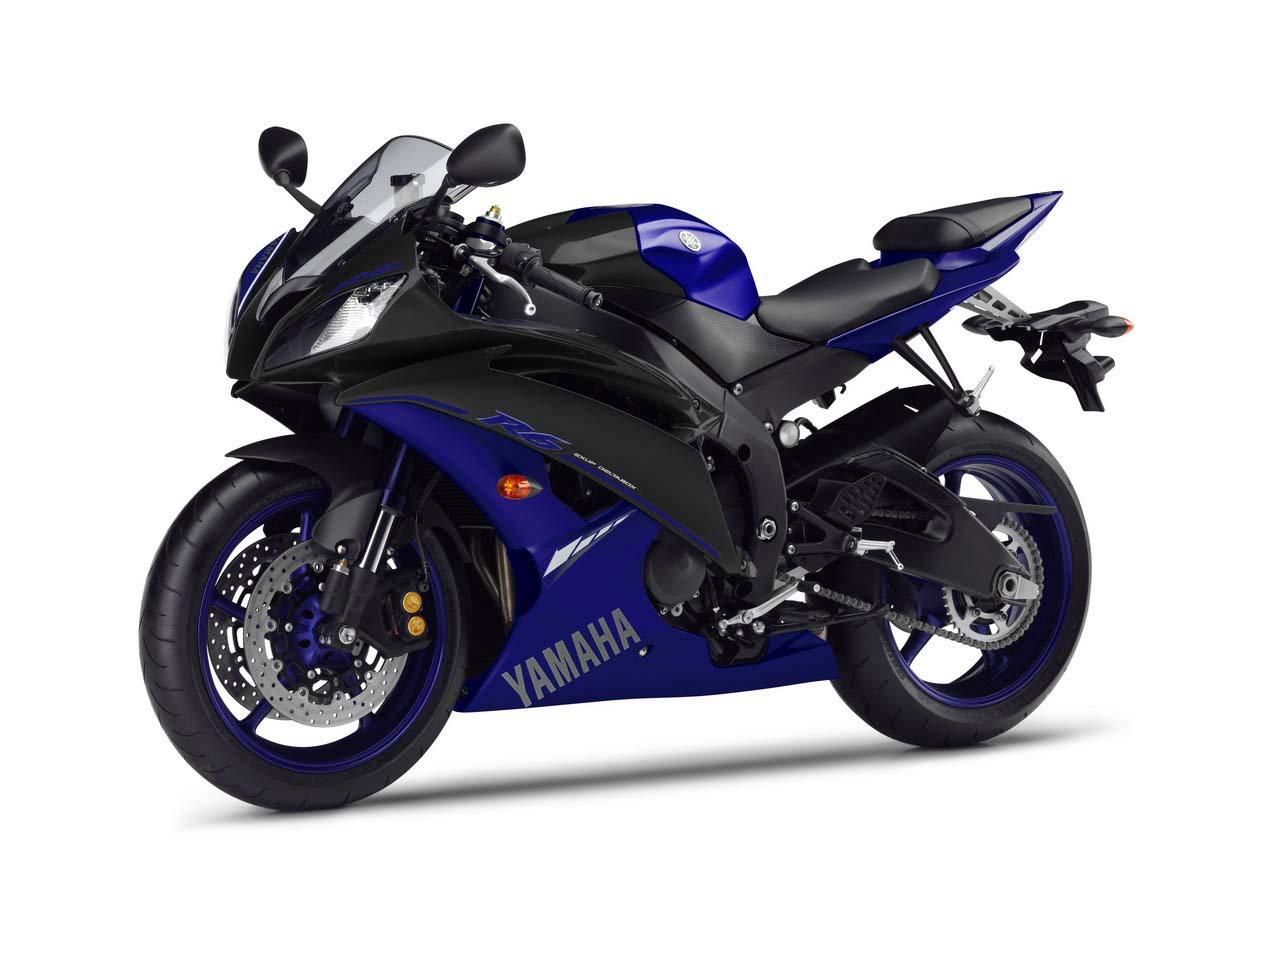 yamaha r6 black 2014 -#main